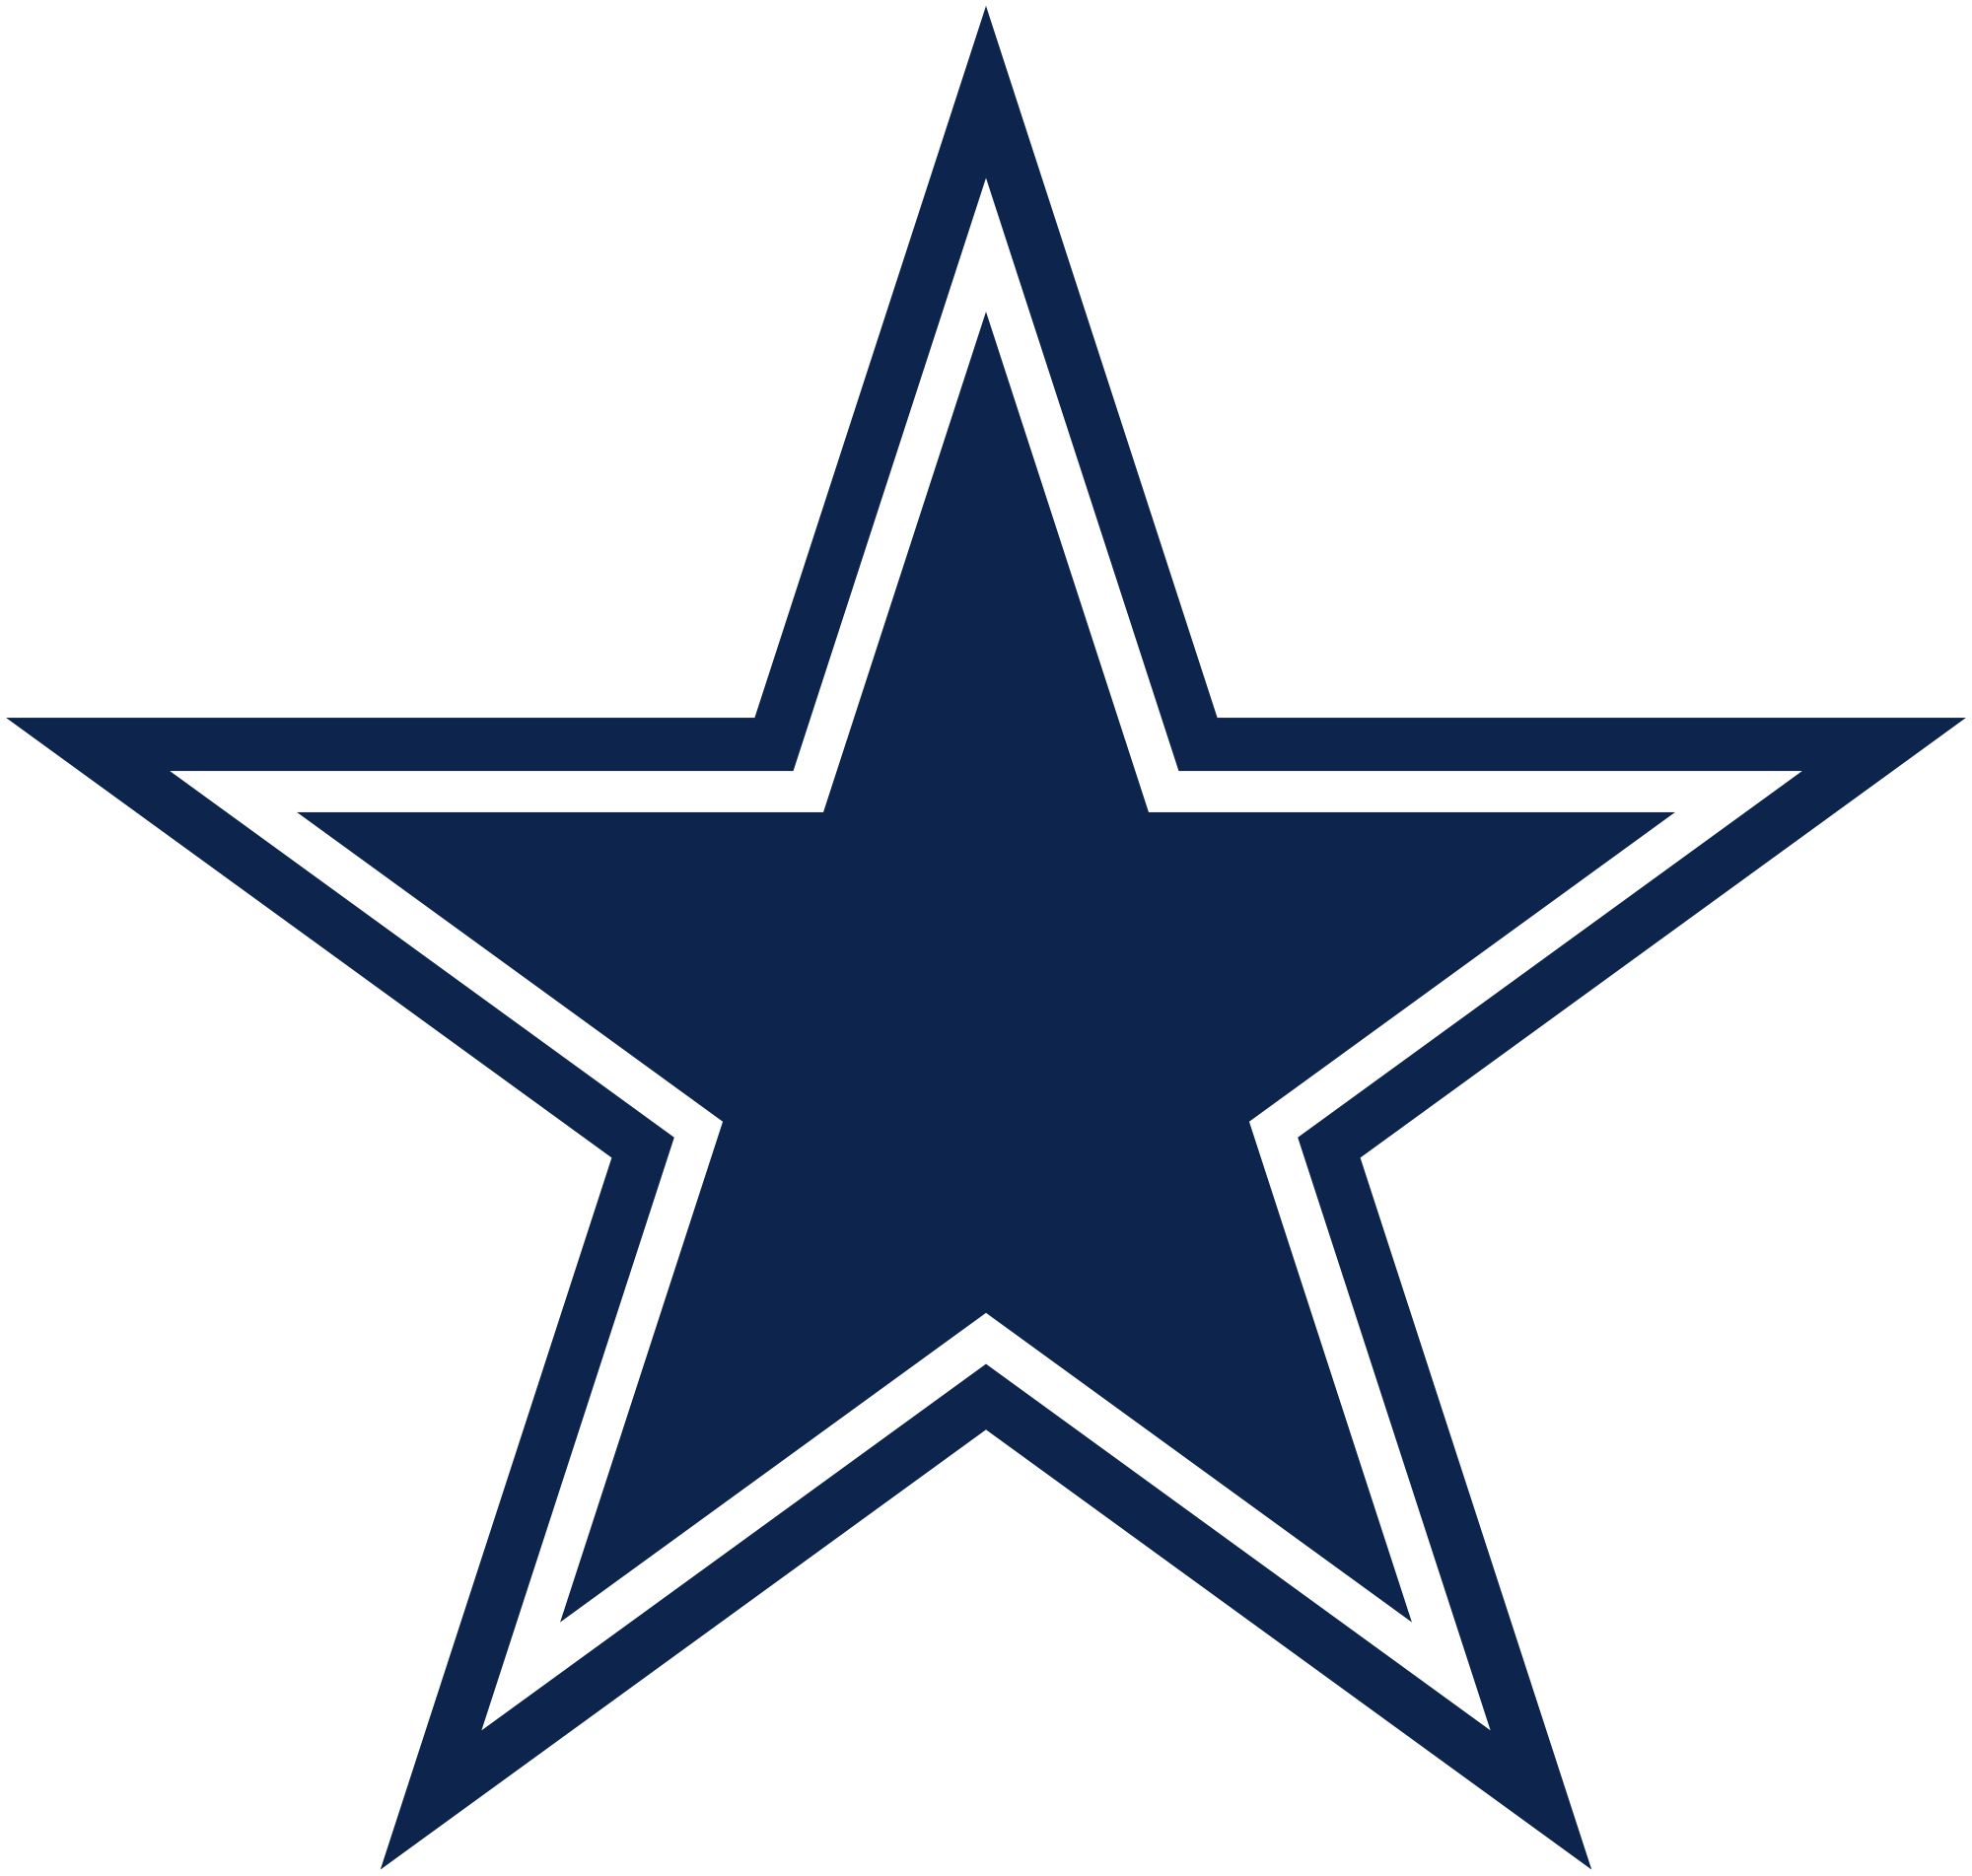 Dallas cowboys from oregon to oxnard the cowboys split camp between midwestern st university and the residence inn in oxnard ca spending 2 weeks in each location buycottarizona Choice Image